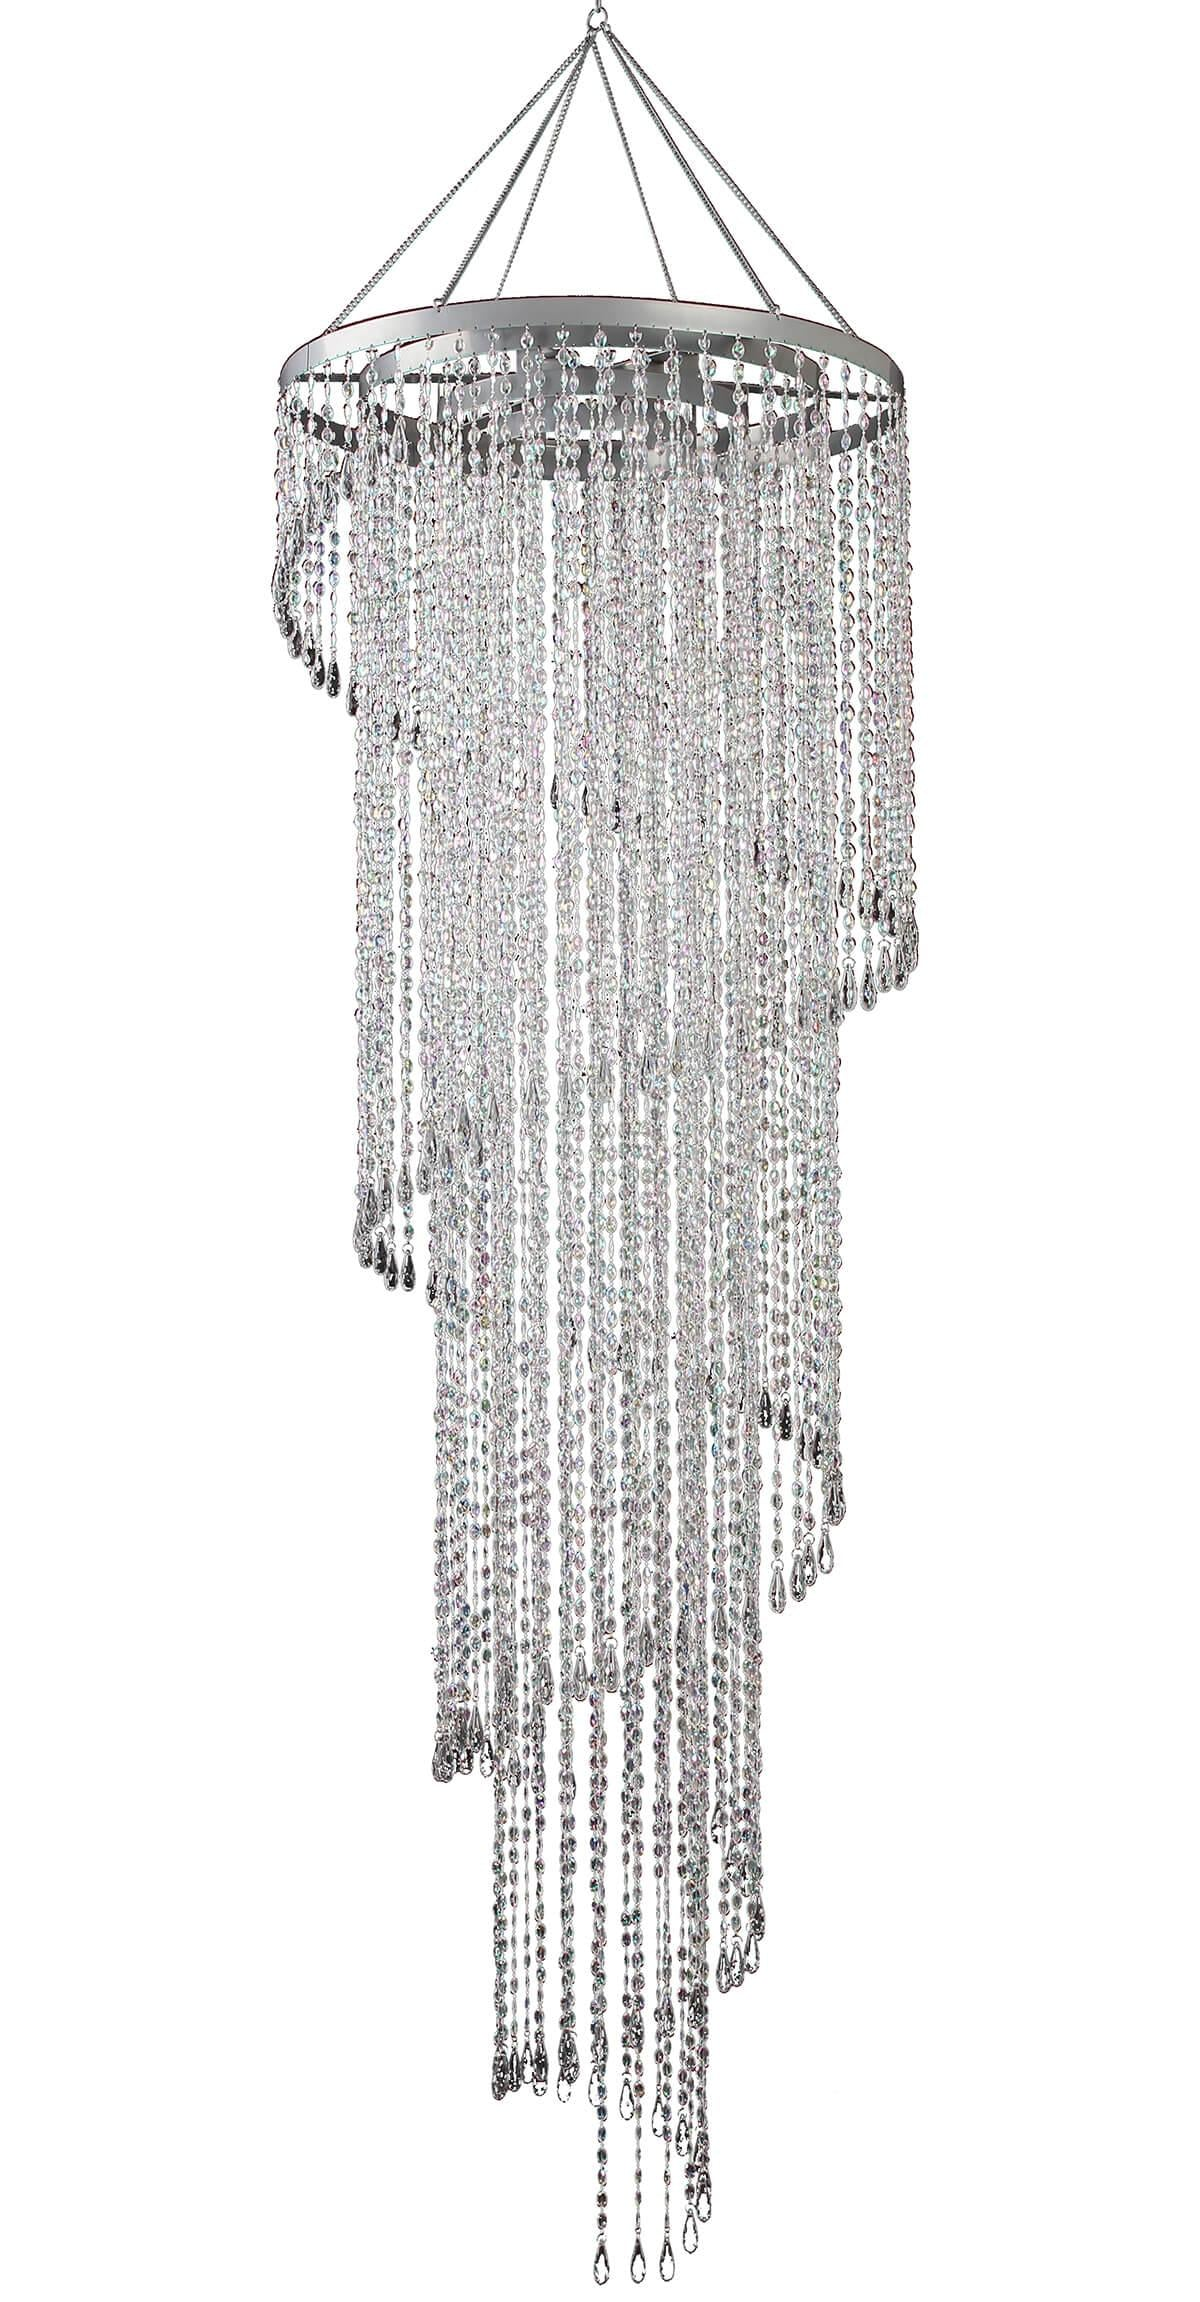 Crystal Chandelier, Round 24in x 72in, with lighting kit